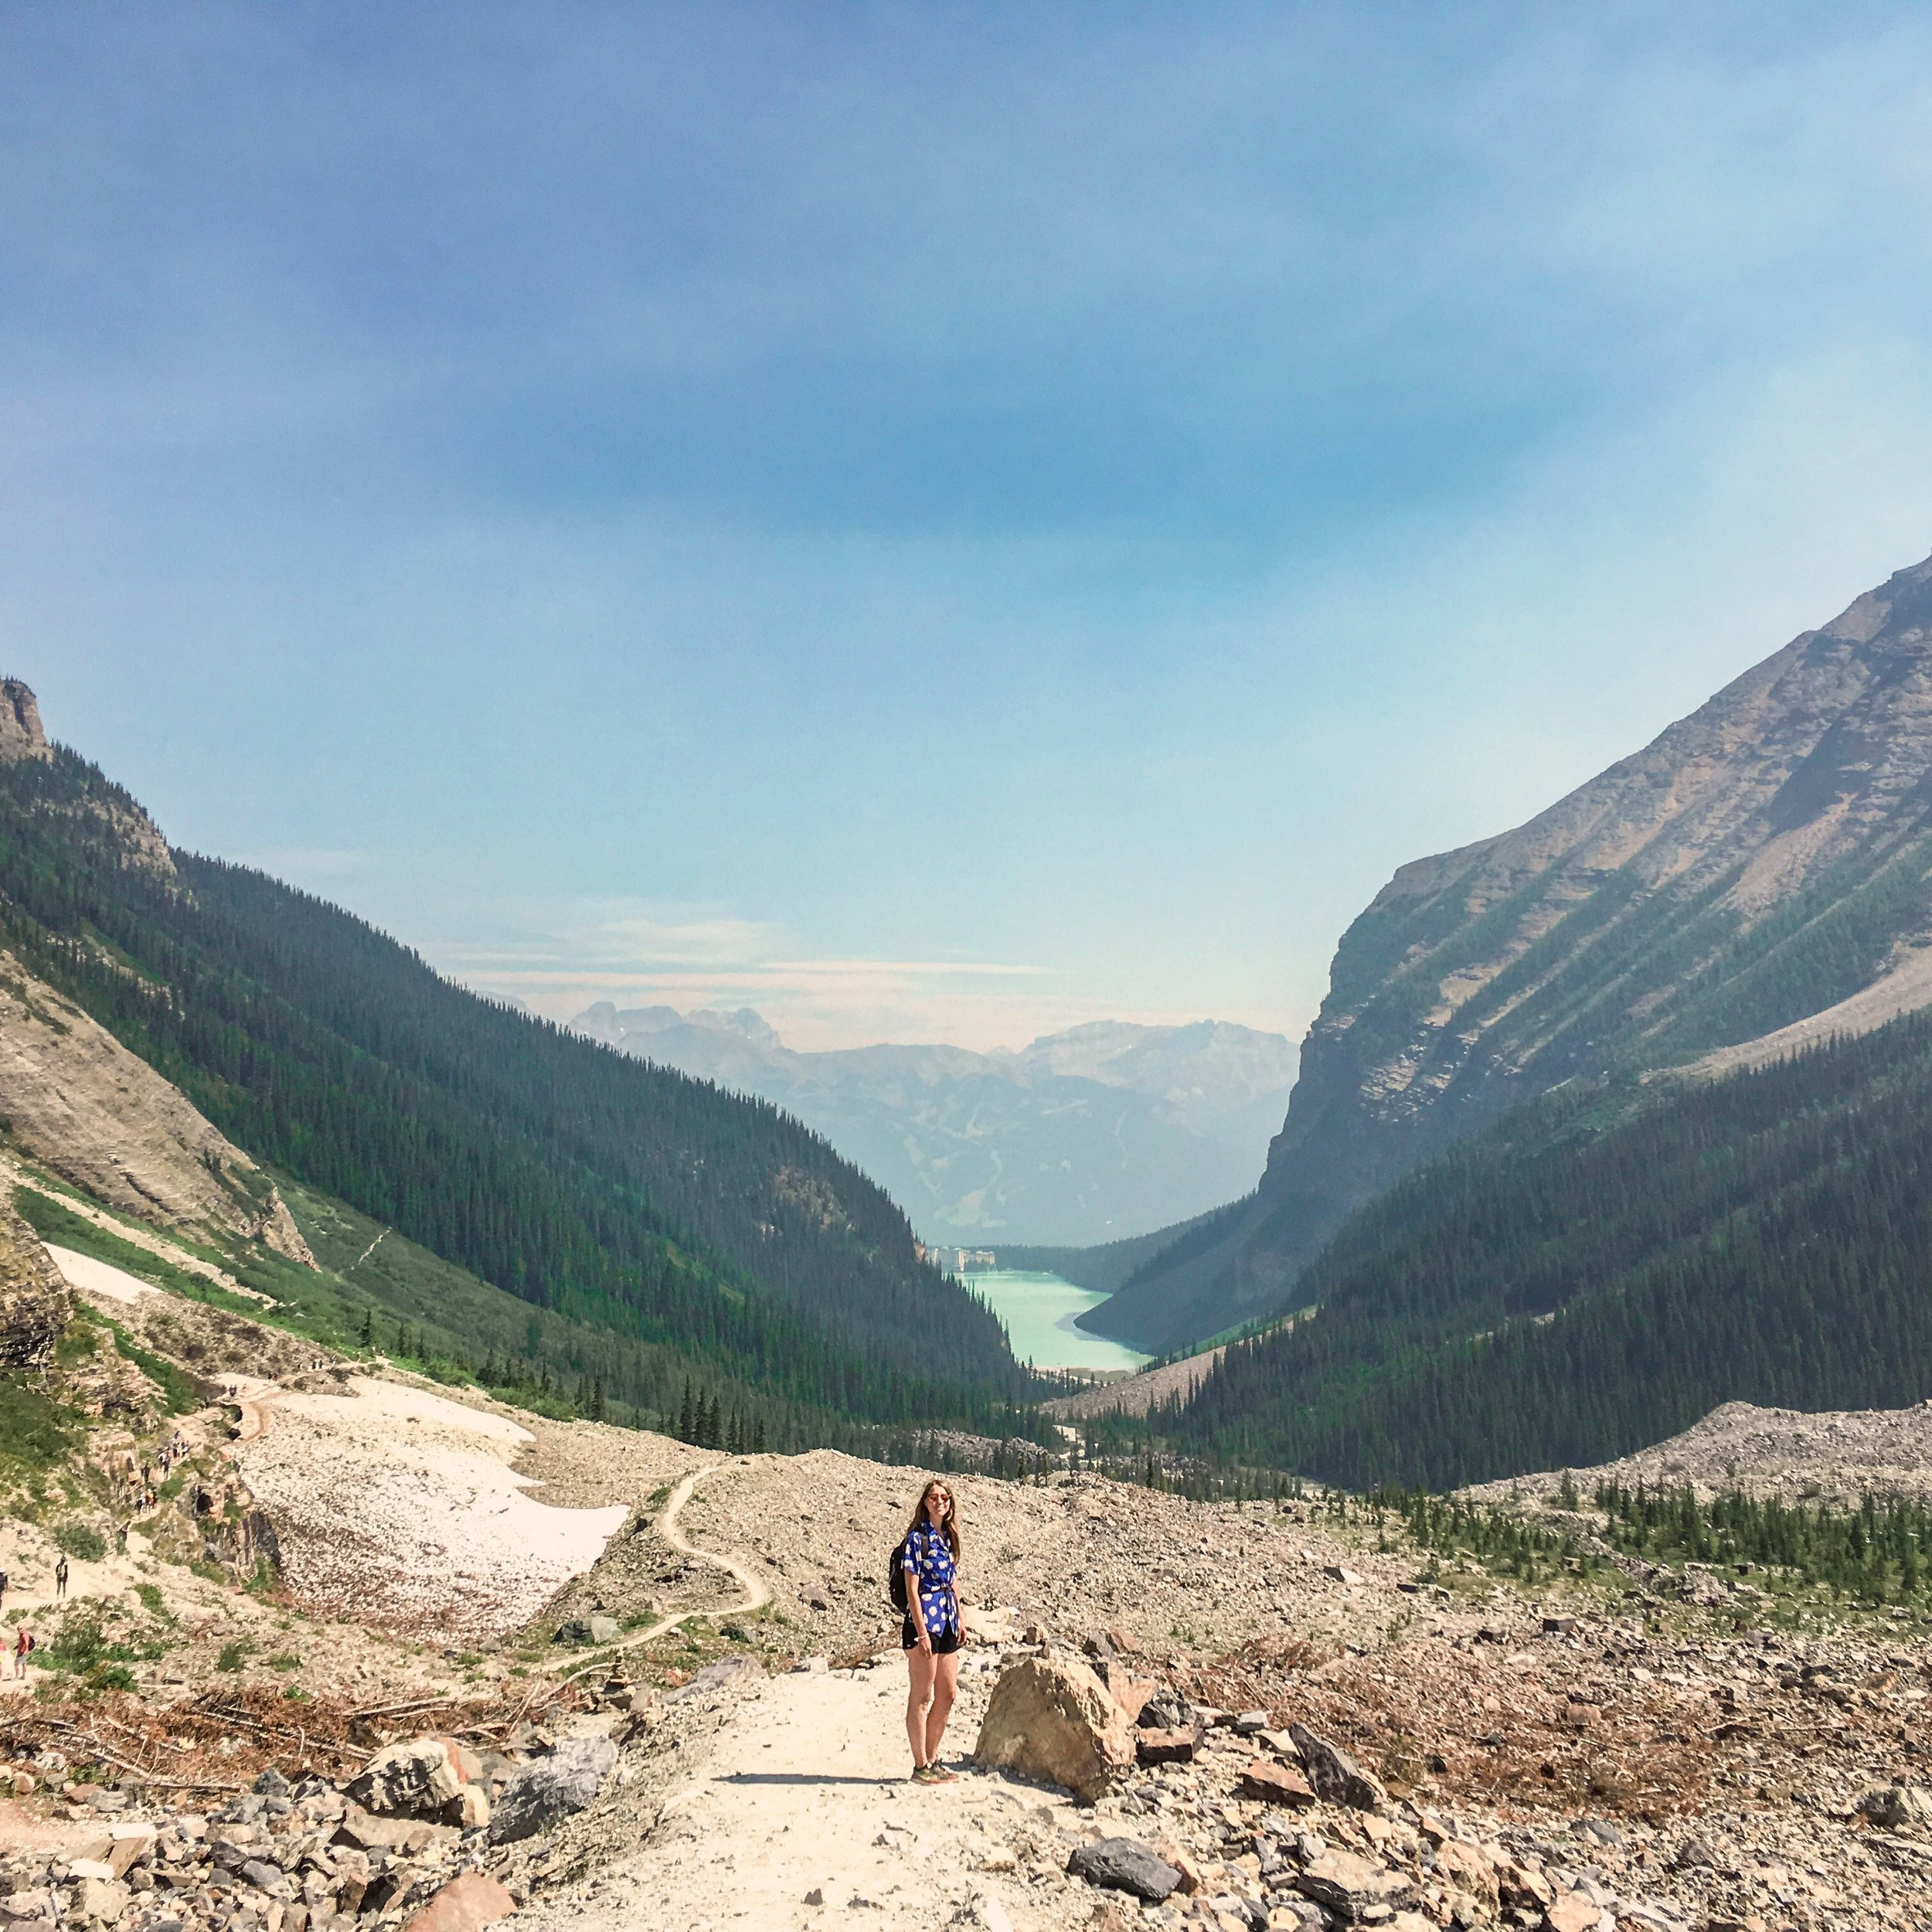 Look back on Lake Louise as you hike through the glacial-carved valleys of the past